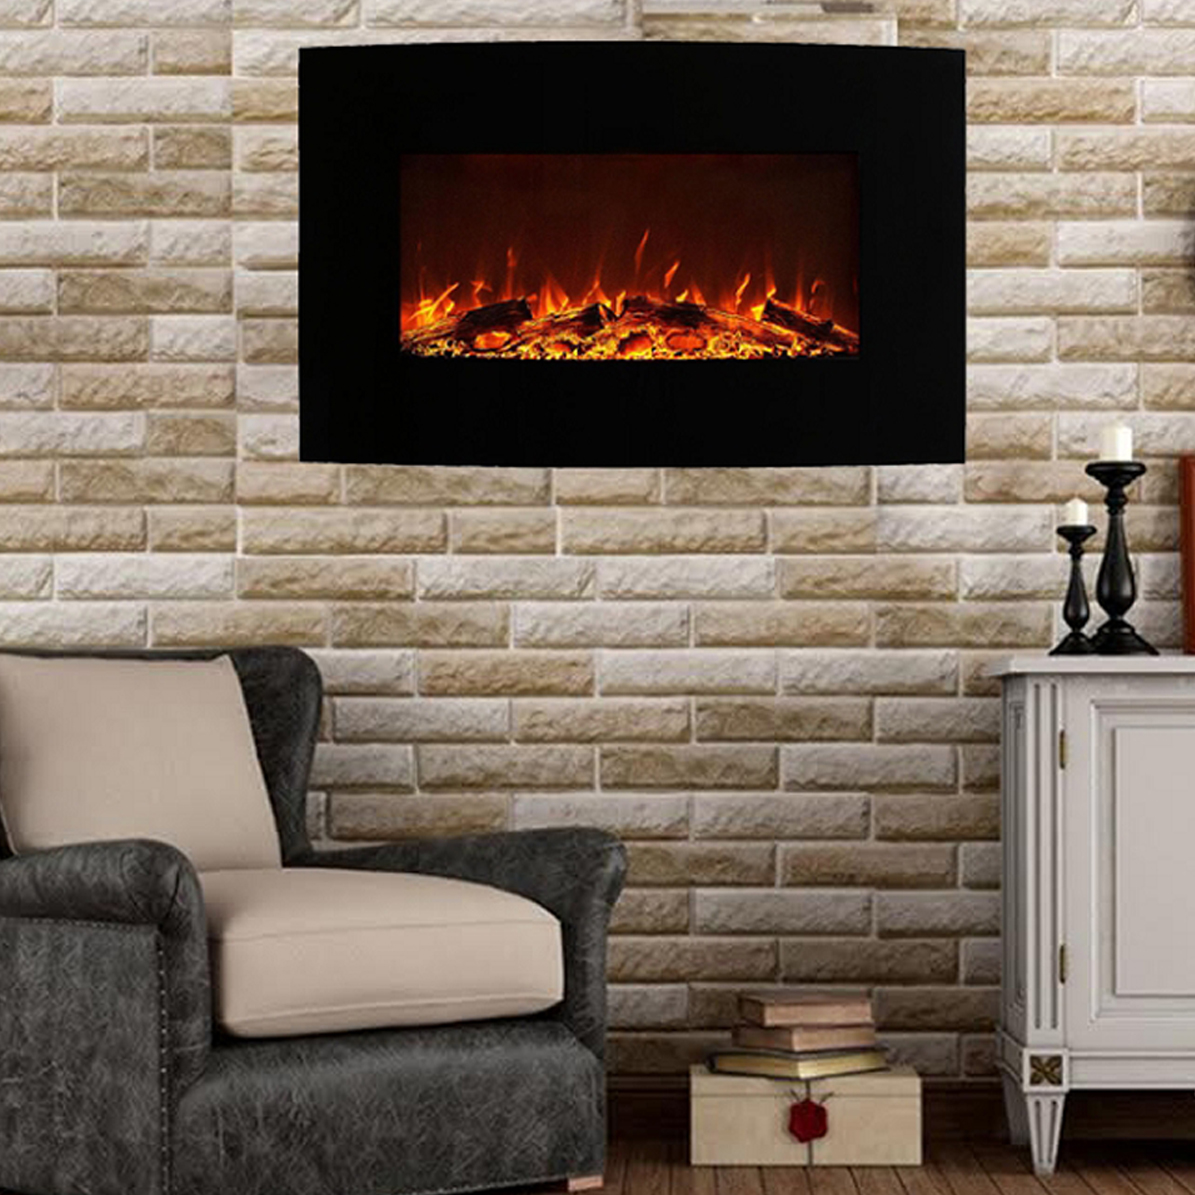 Madison 35 Inch Ventless Heater Electric Wall Mounted